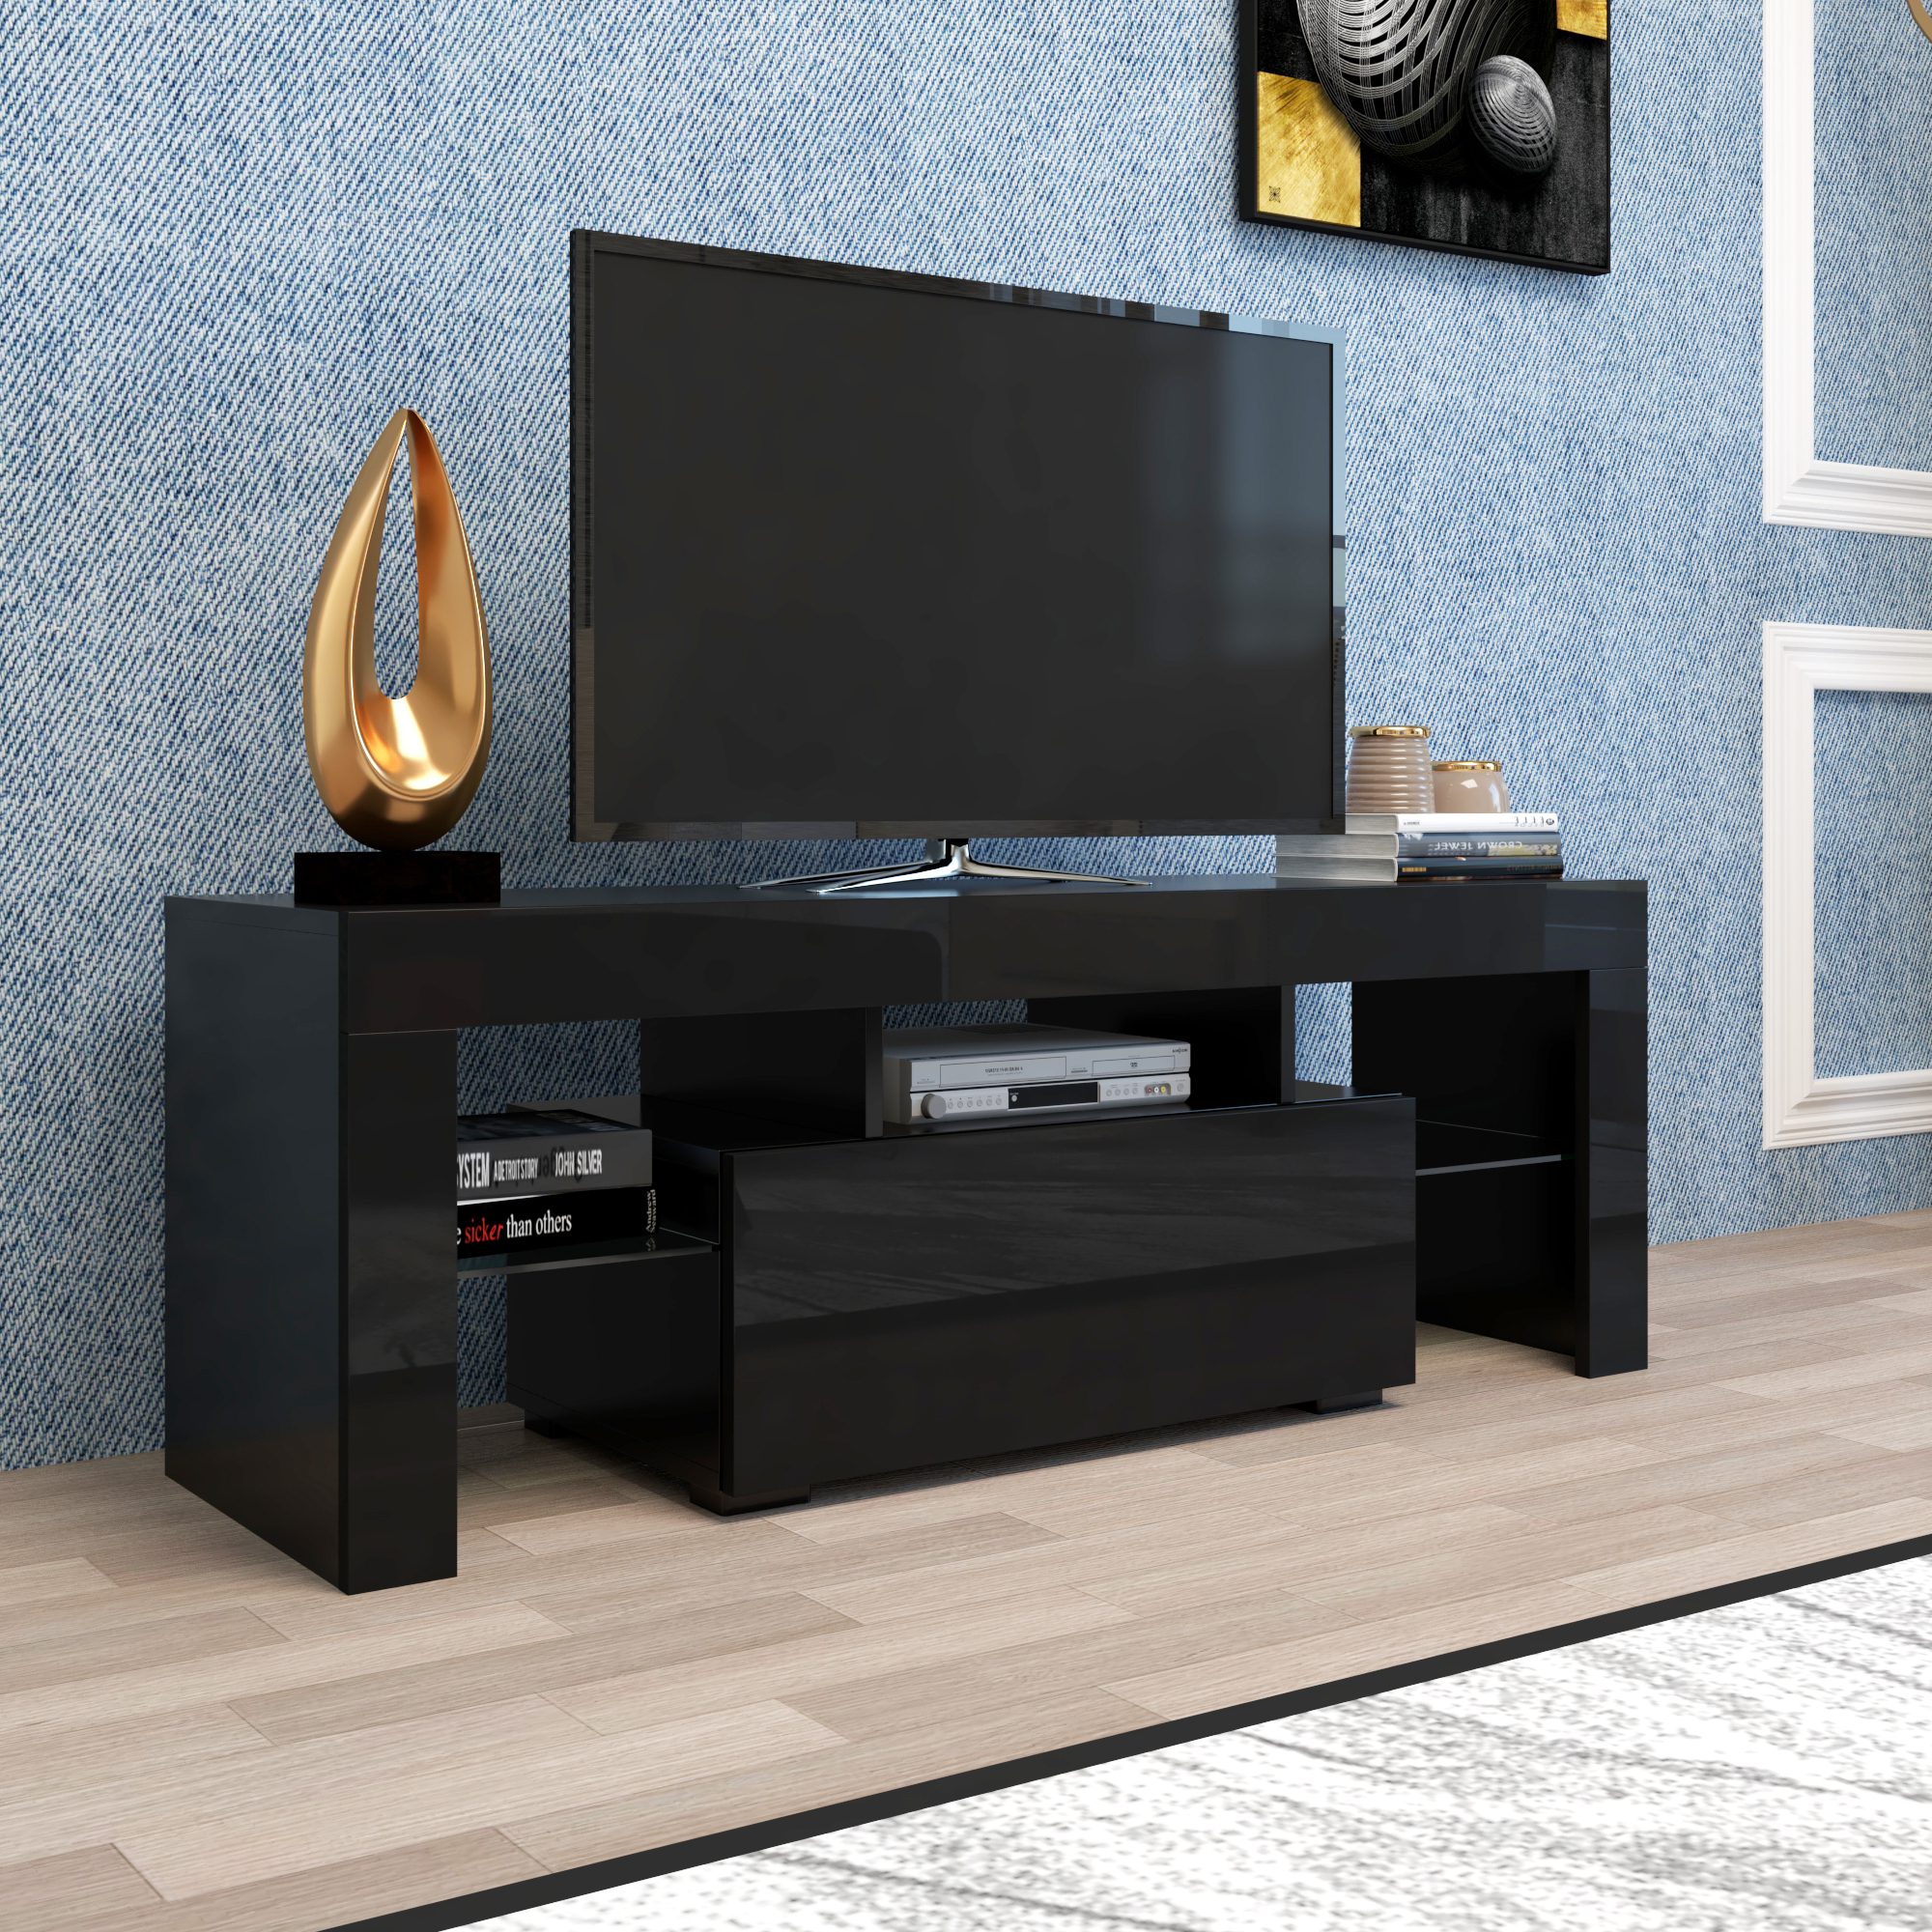 Entertainment Centers And Tv Stands, Yofe Tv Stand With With High Glass Modern Entertainment Tv Stands For Living Room Bedroom (View 6 of 20)